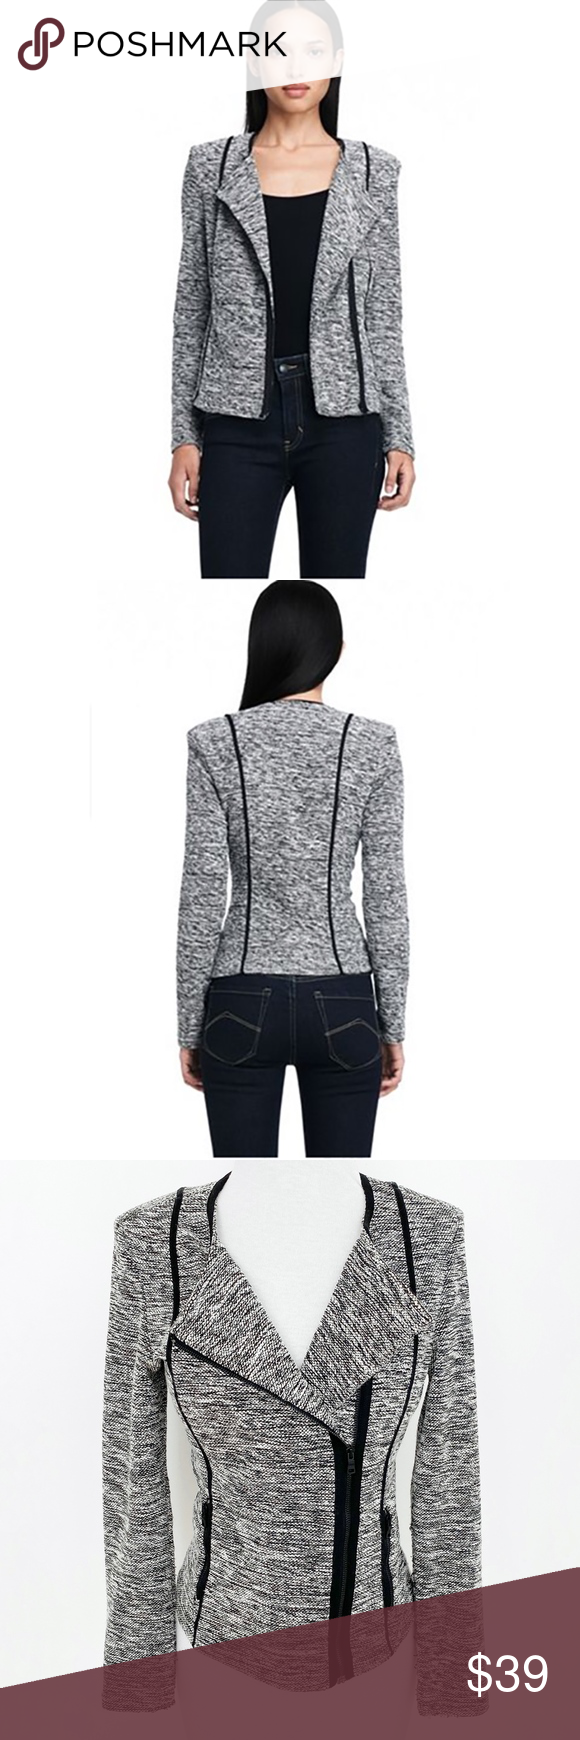 sold armani exchange • b&w asymmetric zip jacket